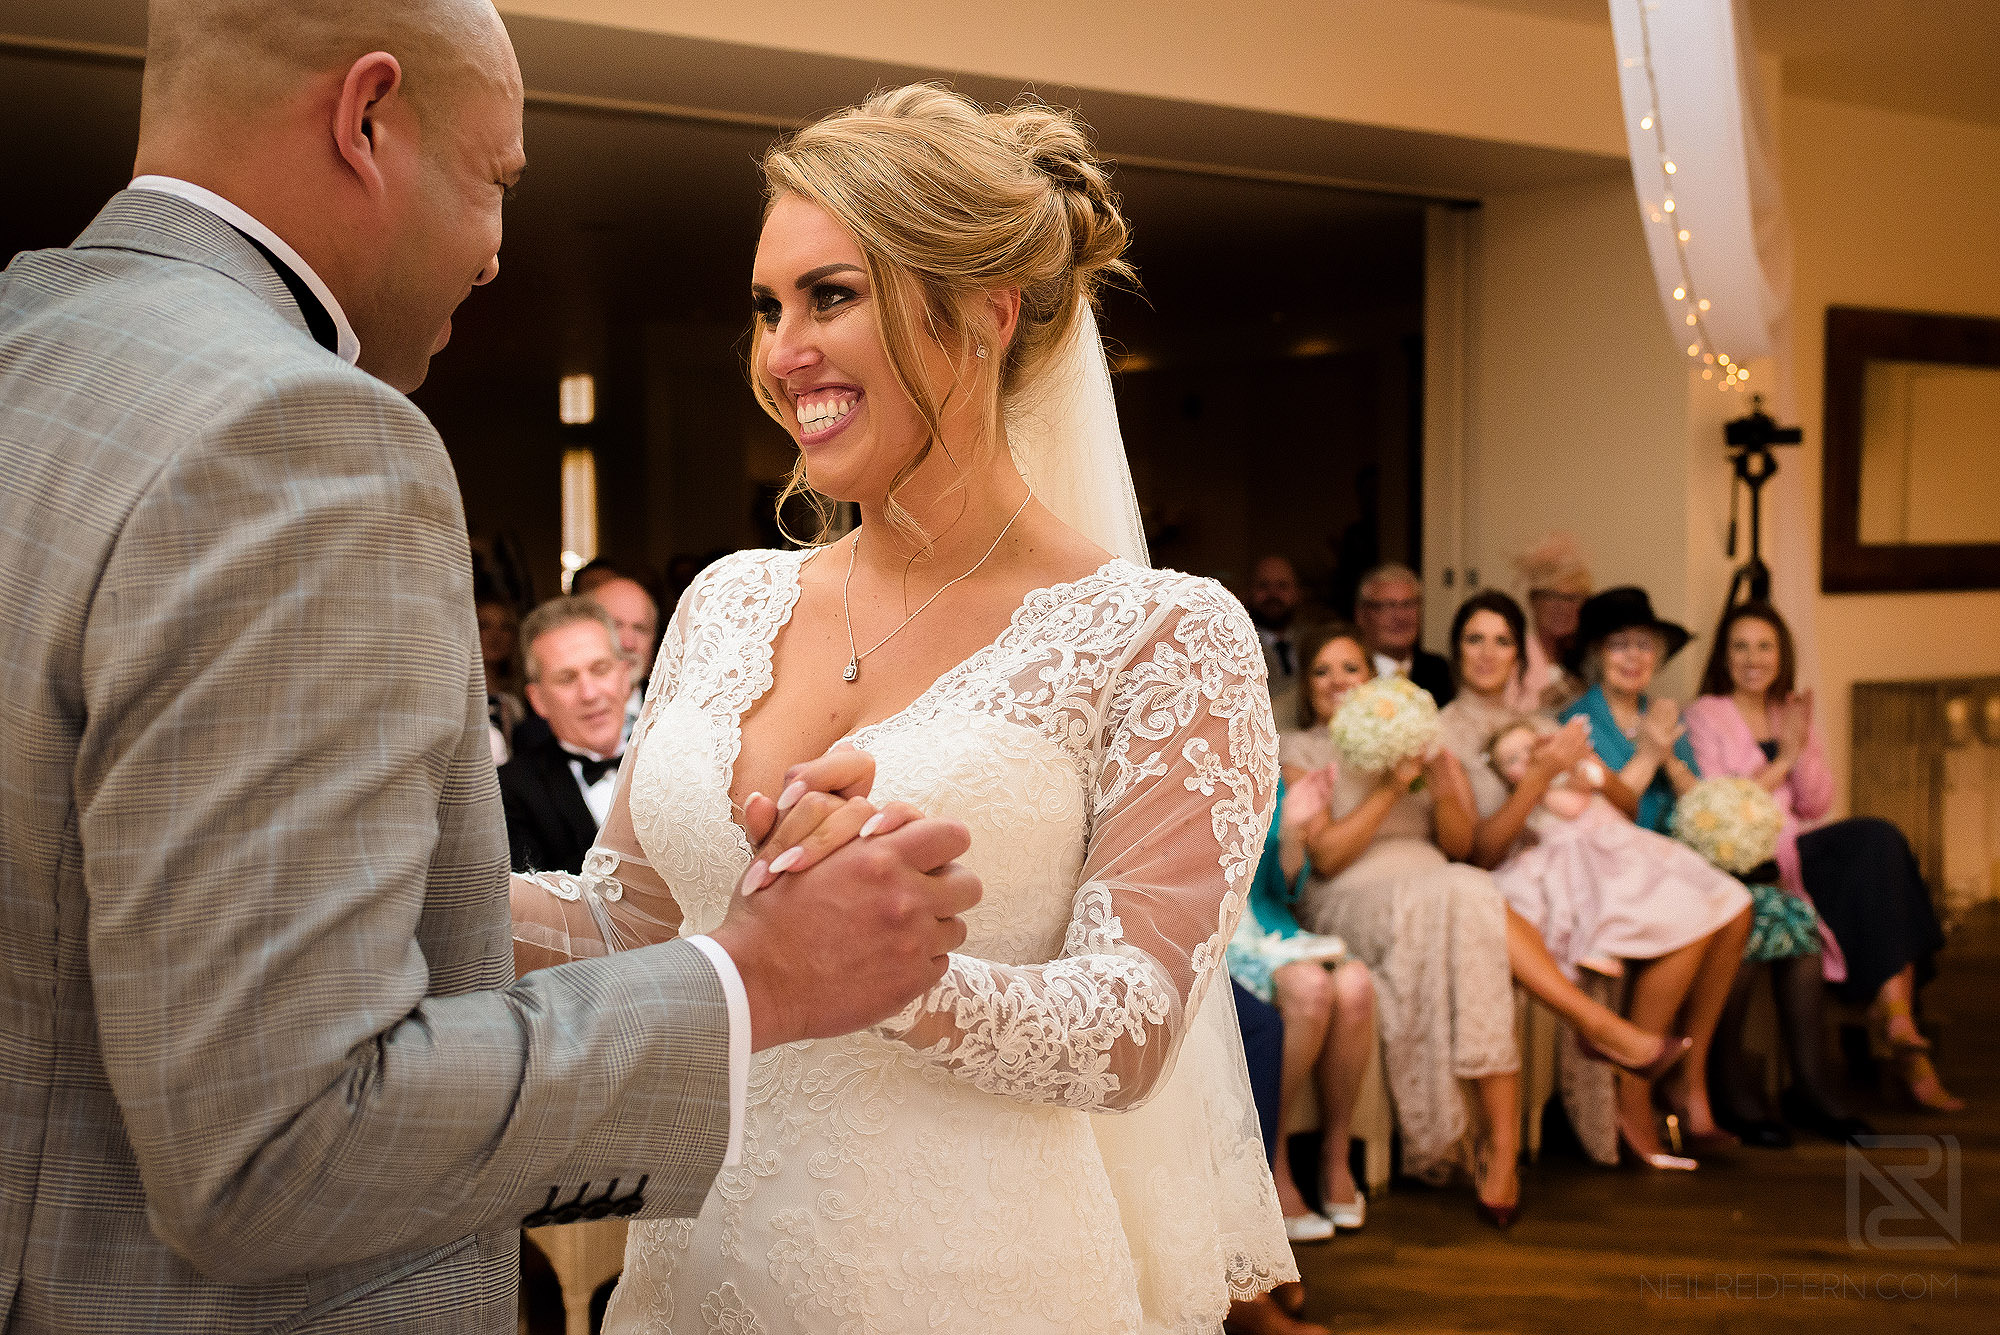 Bride smiling during wedding ceremony at Mitton Hall